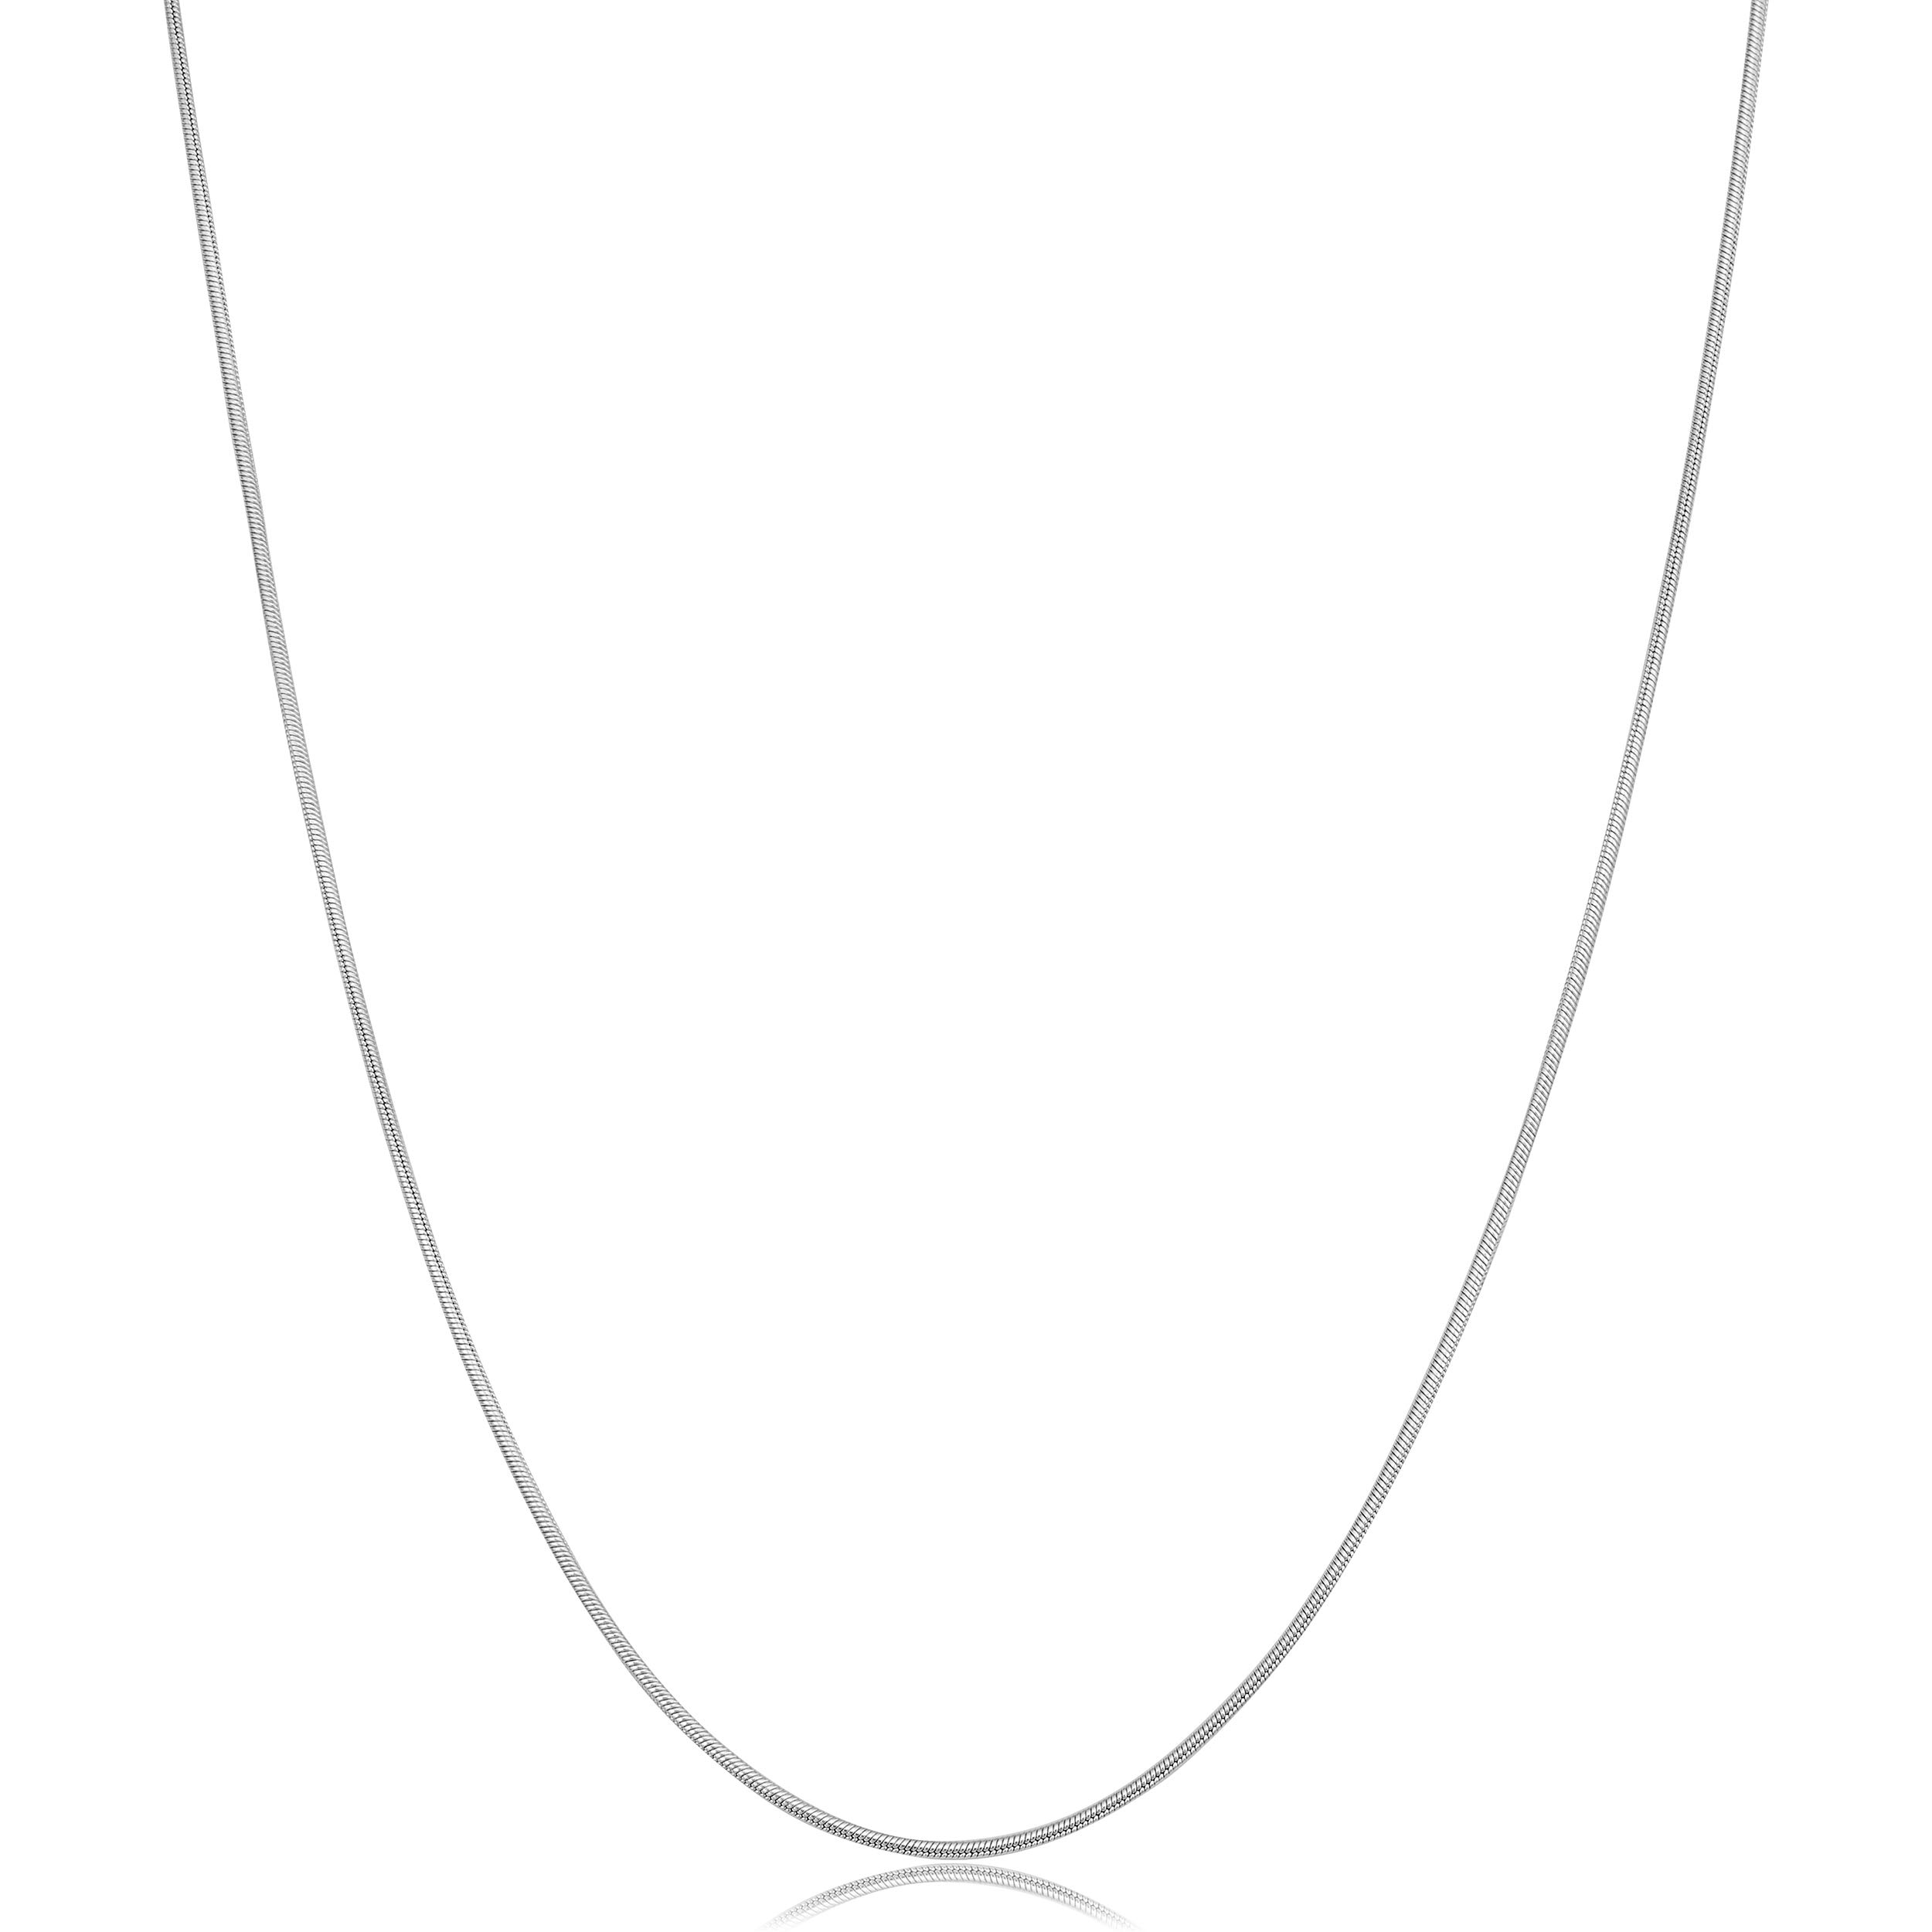 Kooljewelry 14k White Gold 0.8 mm Round Snake Chain Necklace